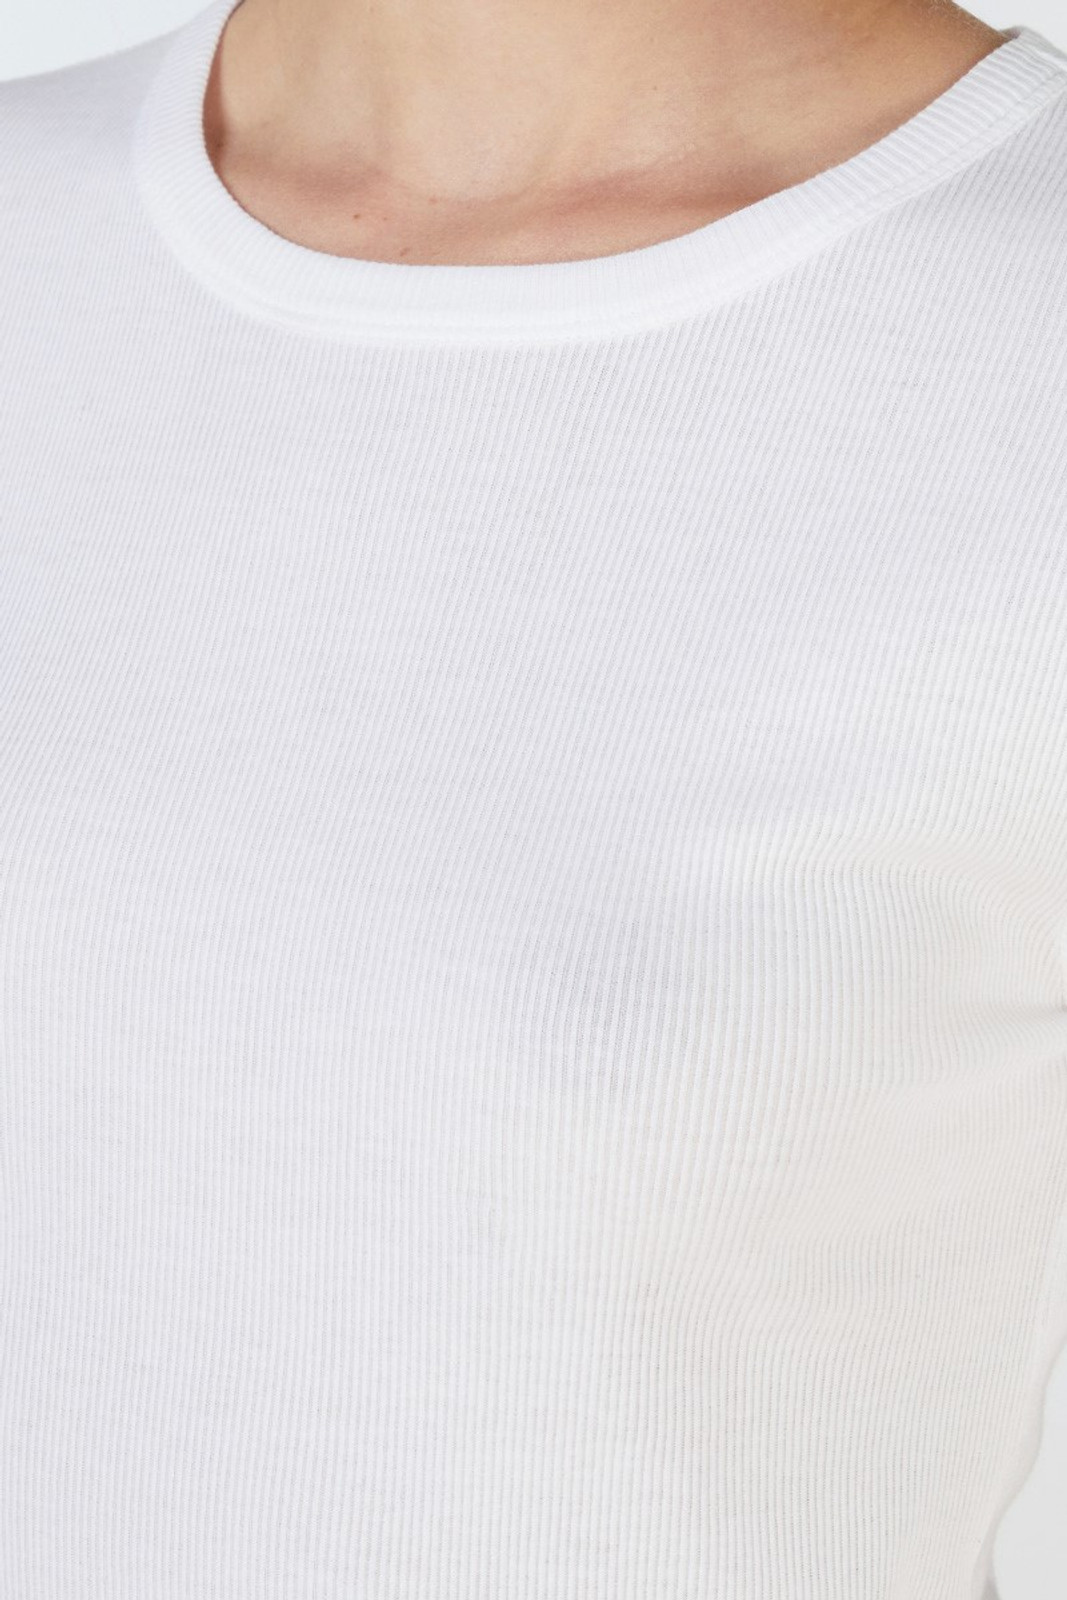 Elka Collective Kindred Tee White  4